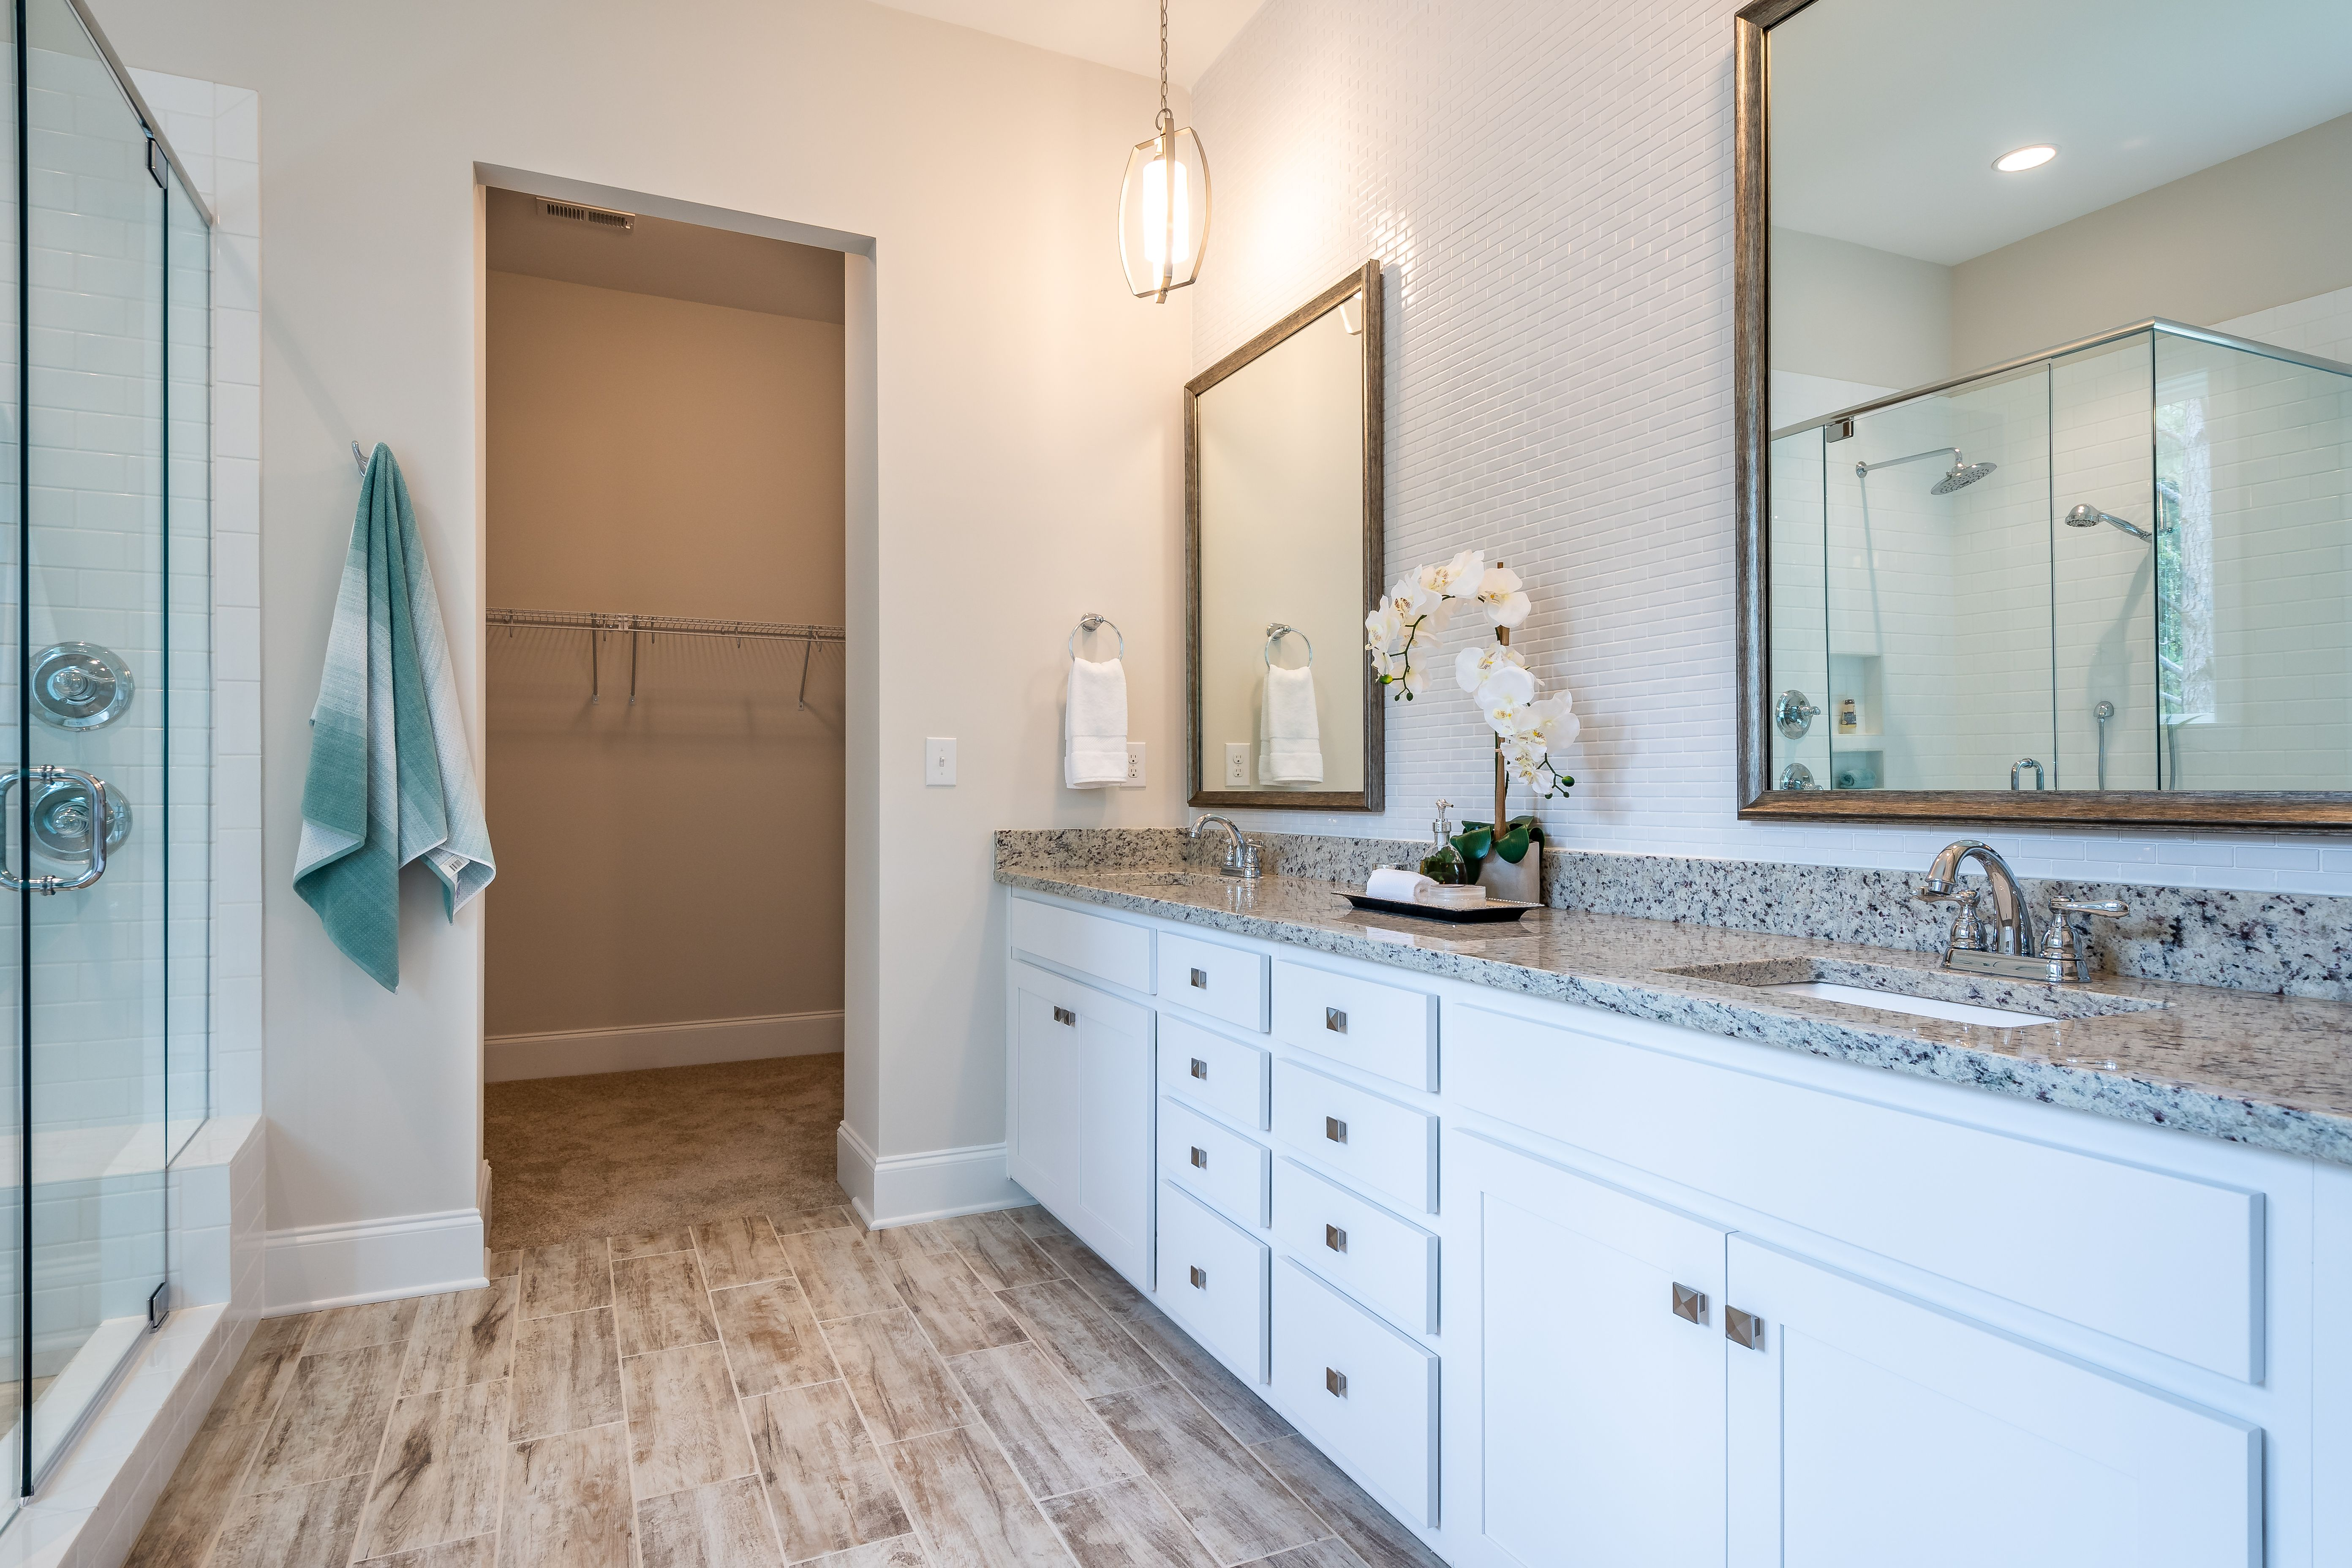 Bathroom featured in the Muirfield with Retreat By Greybrook Homes in Charlotte, NC